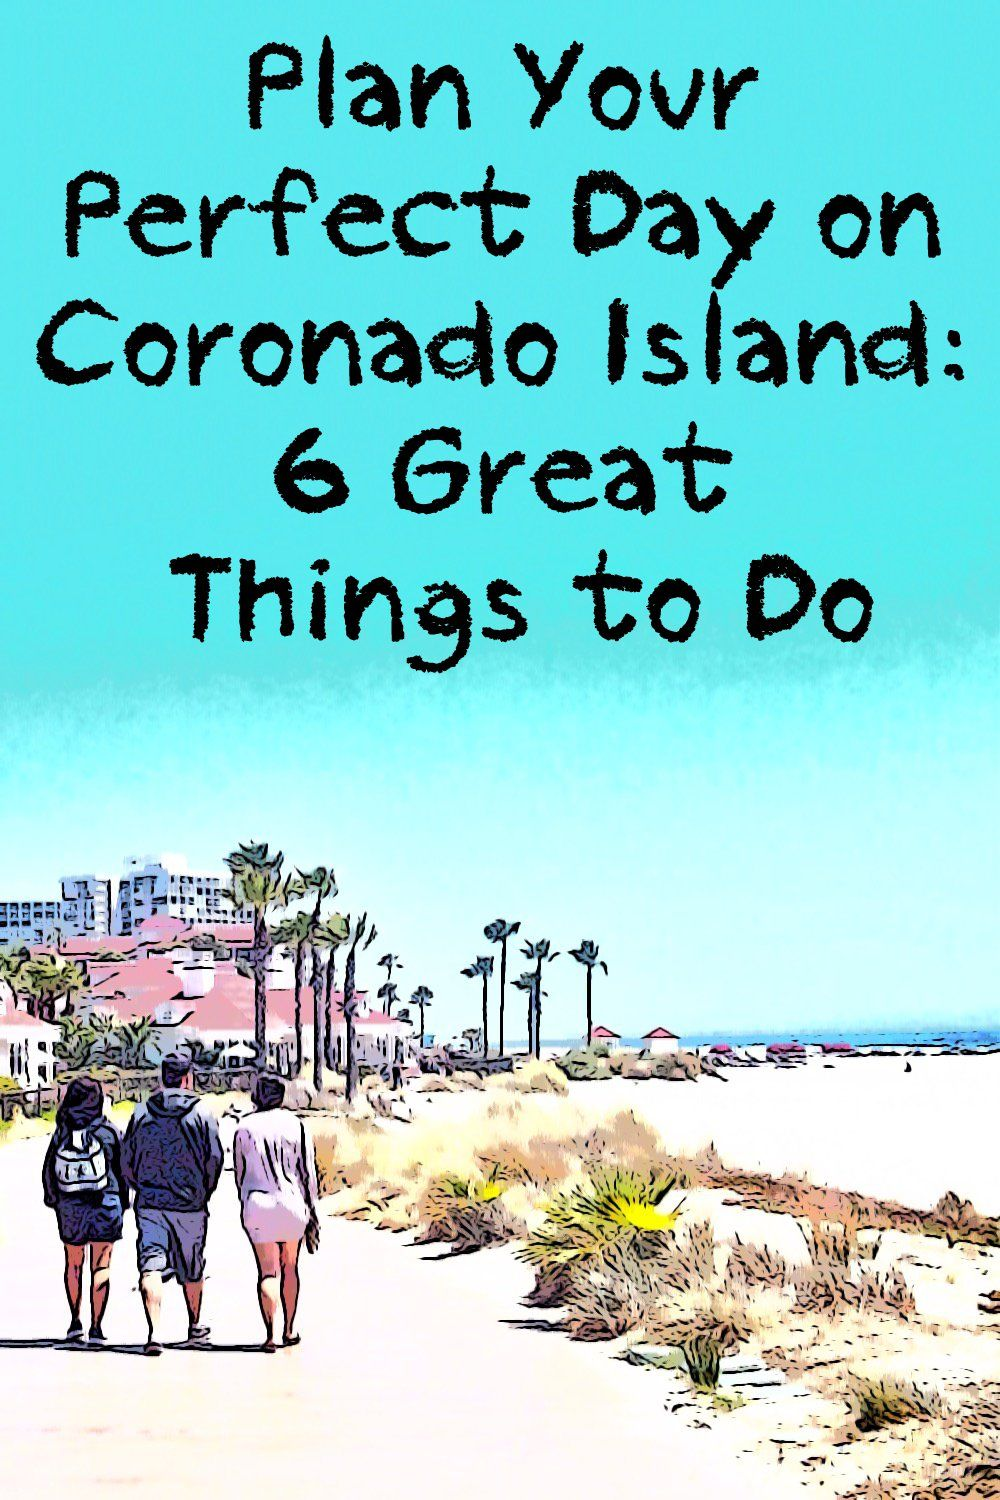 After You Read This, All You Need To Do Is Get To Coronado